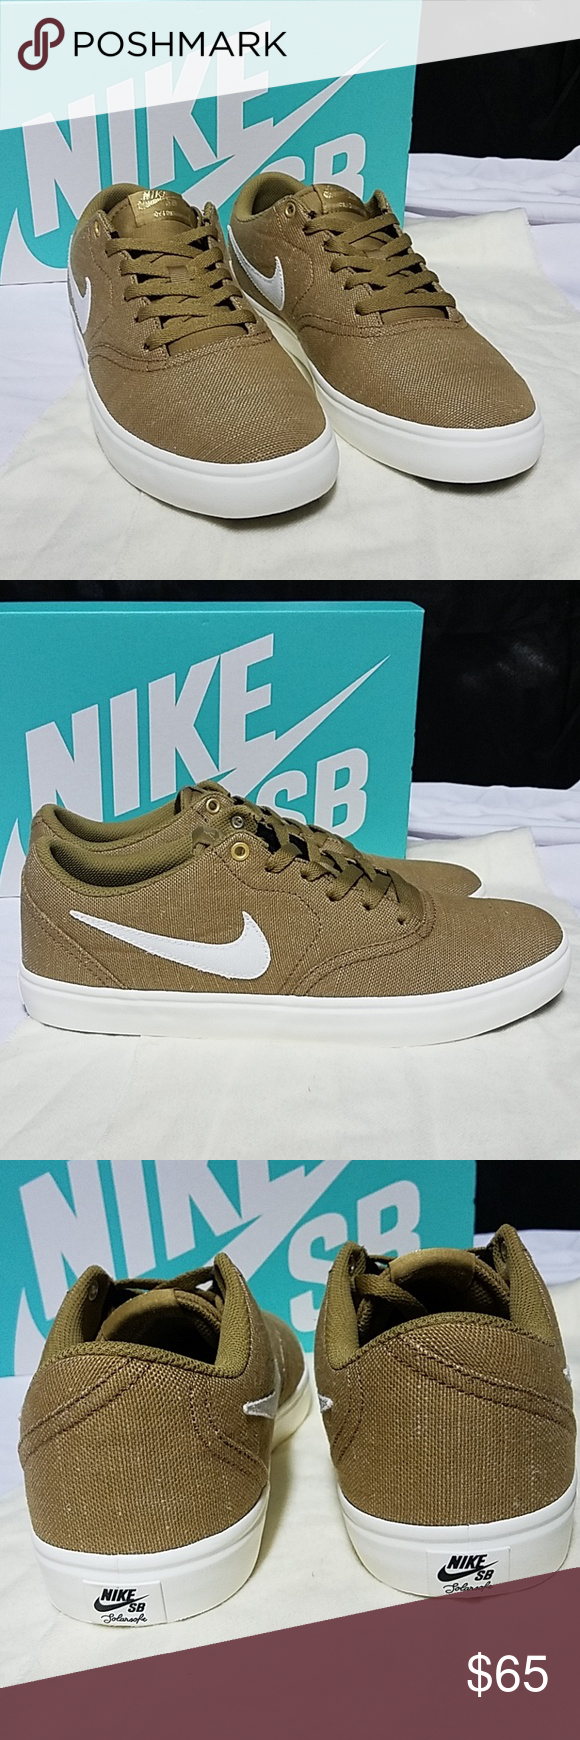 34adca262a91 ... latest fashion 60af1 c896f Nike SB Check Solarsoft Canvas Premium Sz  9.5 New Color Golden beige ...